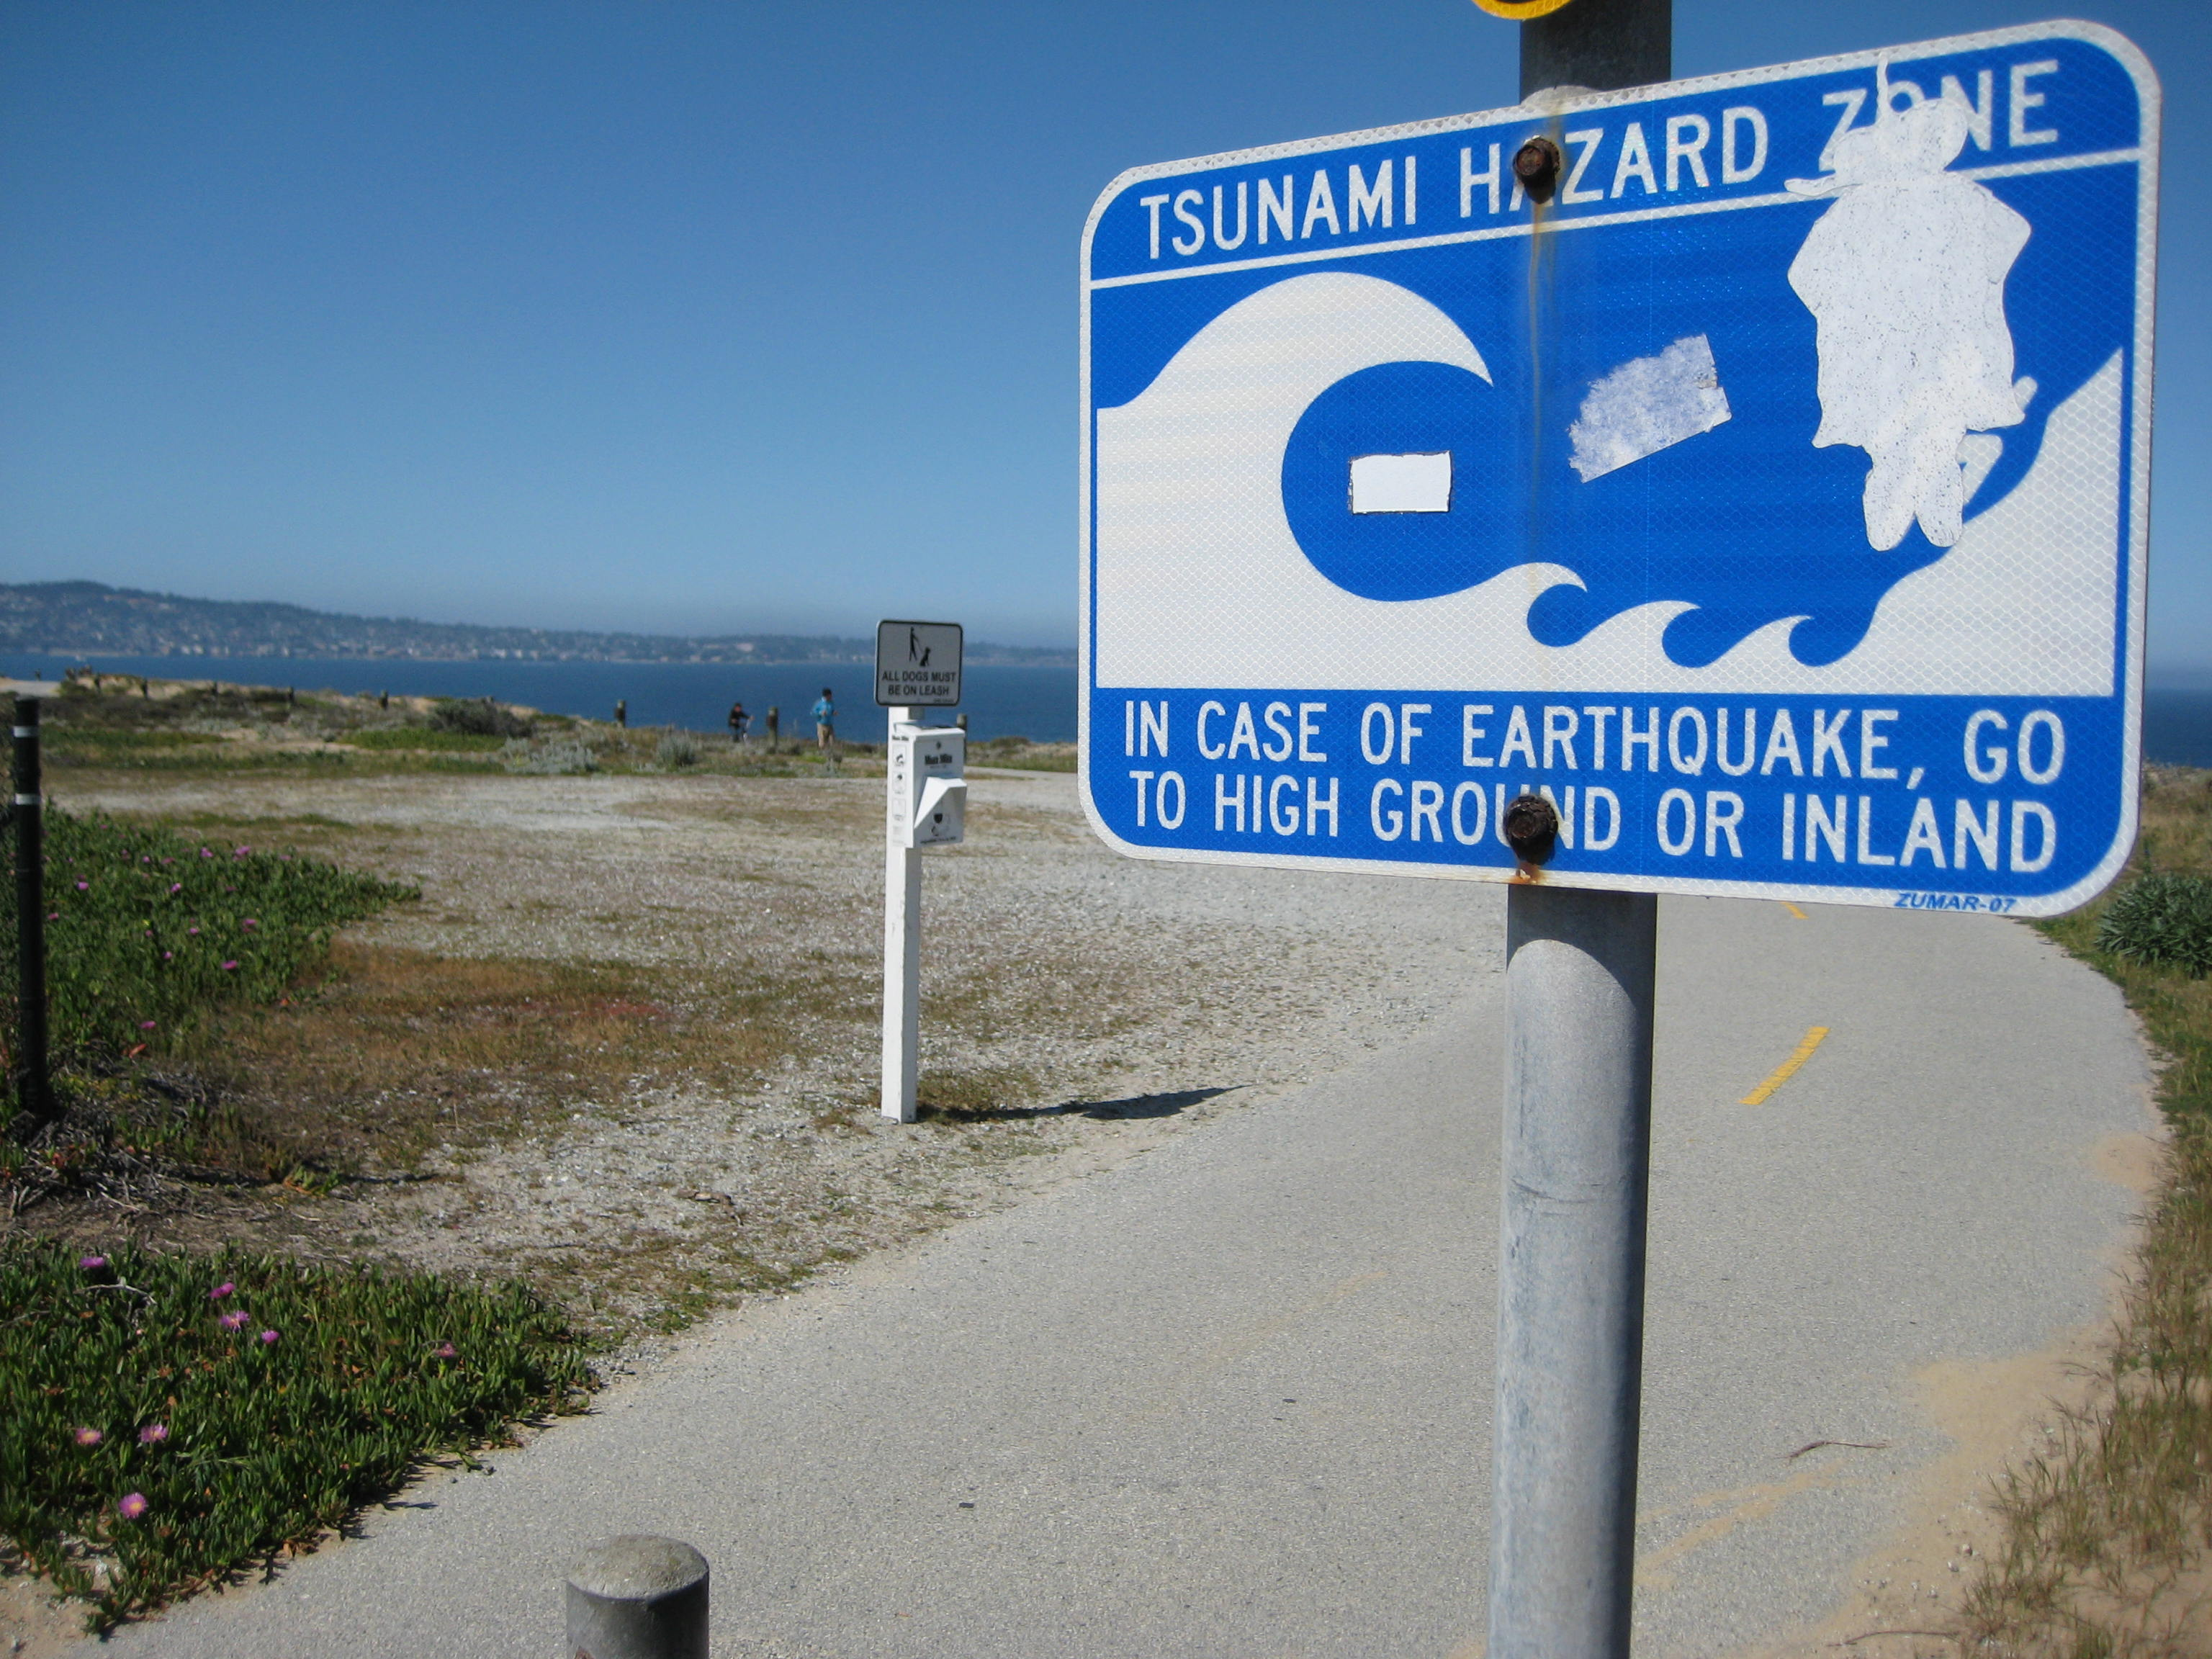 Monterey one of the first counties to get new tsunami